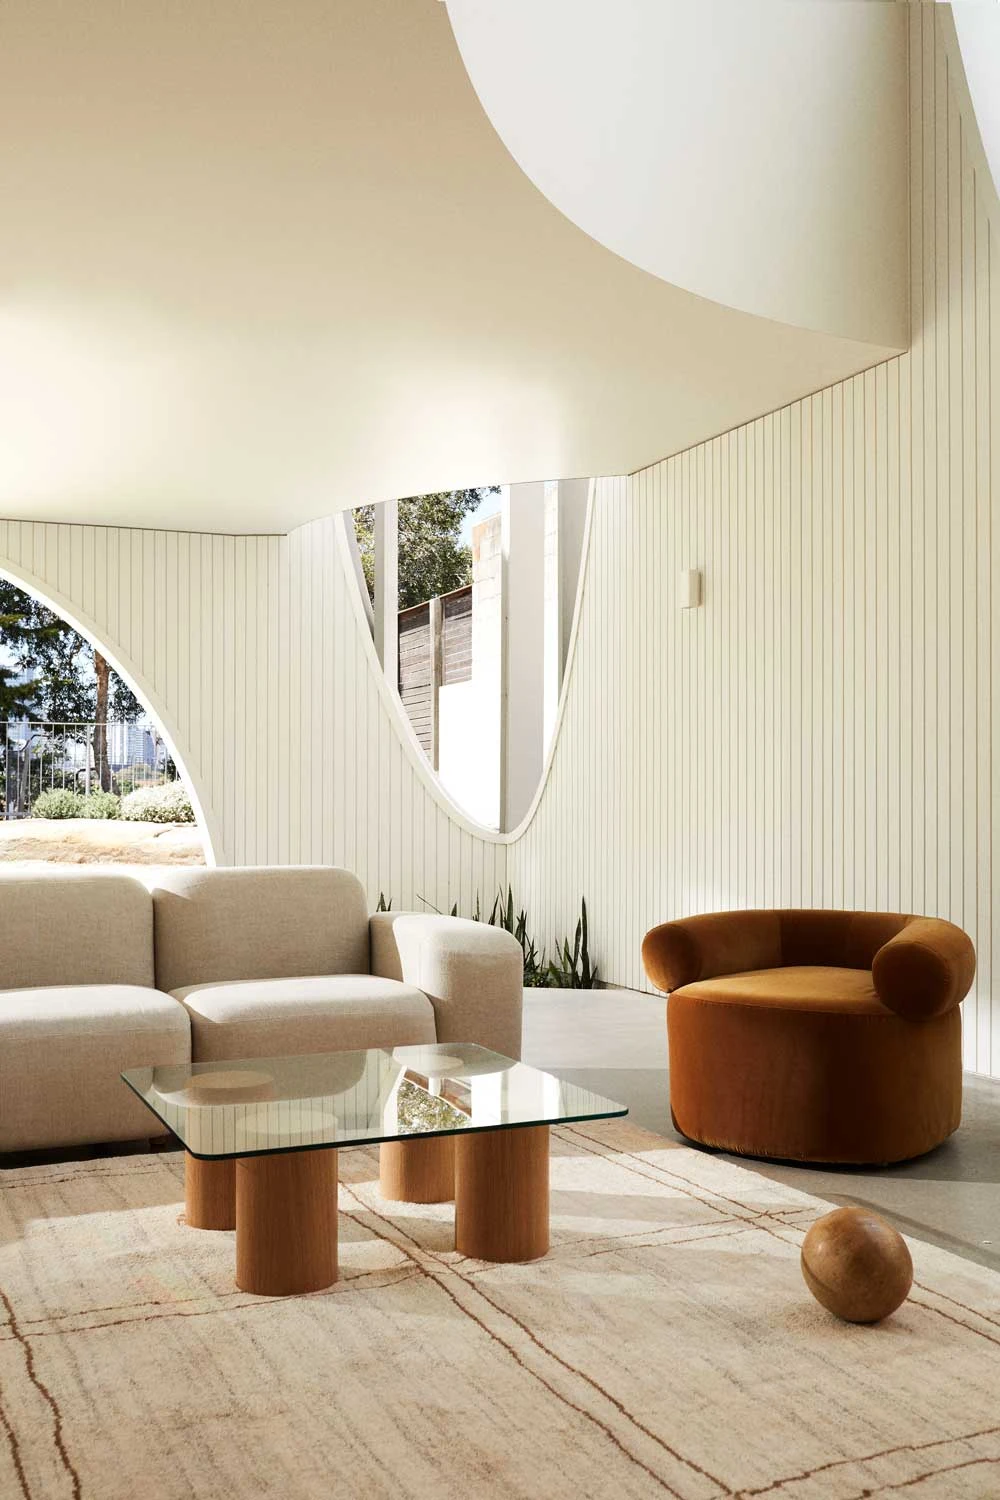 SOL is a minimalist furniture collection created by Australia-based designer Sarah Ellison. The collection, which includes sofas, lounge chairs, tables, and shelving, focus mainly on sculptural forms with warm materials and colors. The pieces were inspired by vintage 1970s designs, heavily playing on proportions and scale. Most notable is the Muse sofa, which emphasizes on substantially rounded features with a focus on comfort.